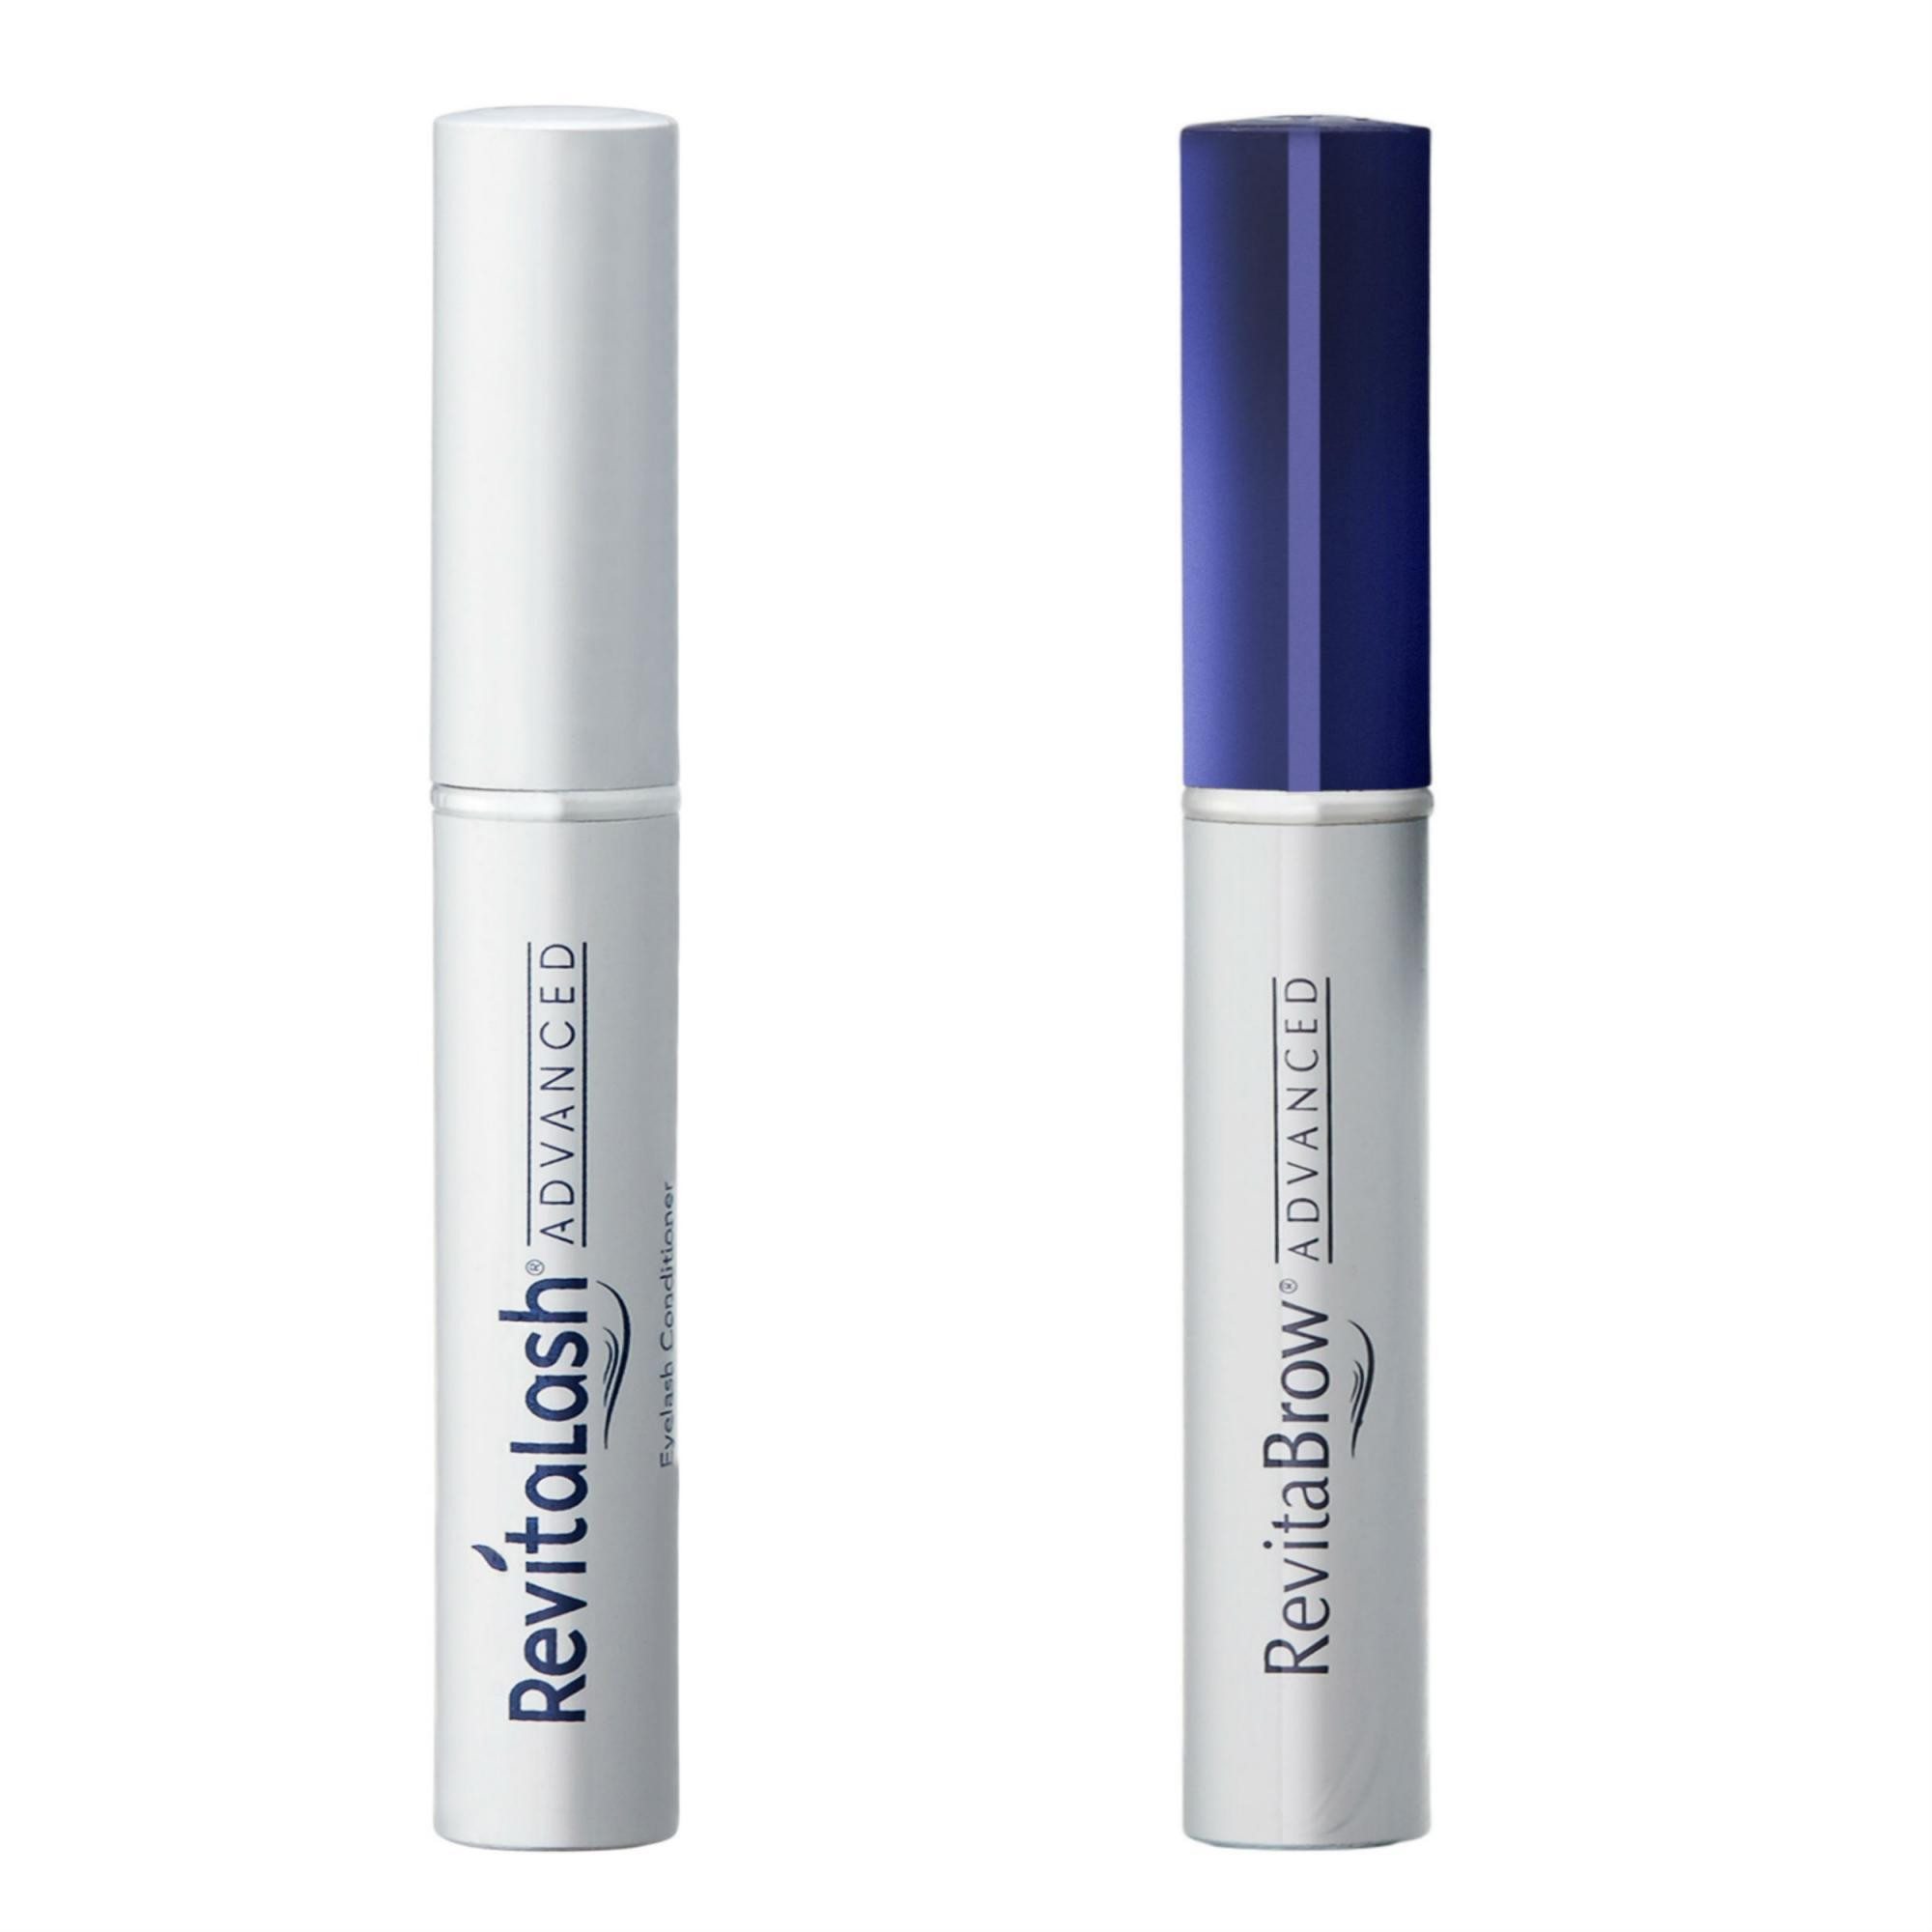 Price Revitalash Advanced Set Eyelash Conditioner 3 5Ml Eyebrow Conditioner 3Ml Intl Revitalash